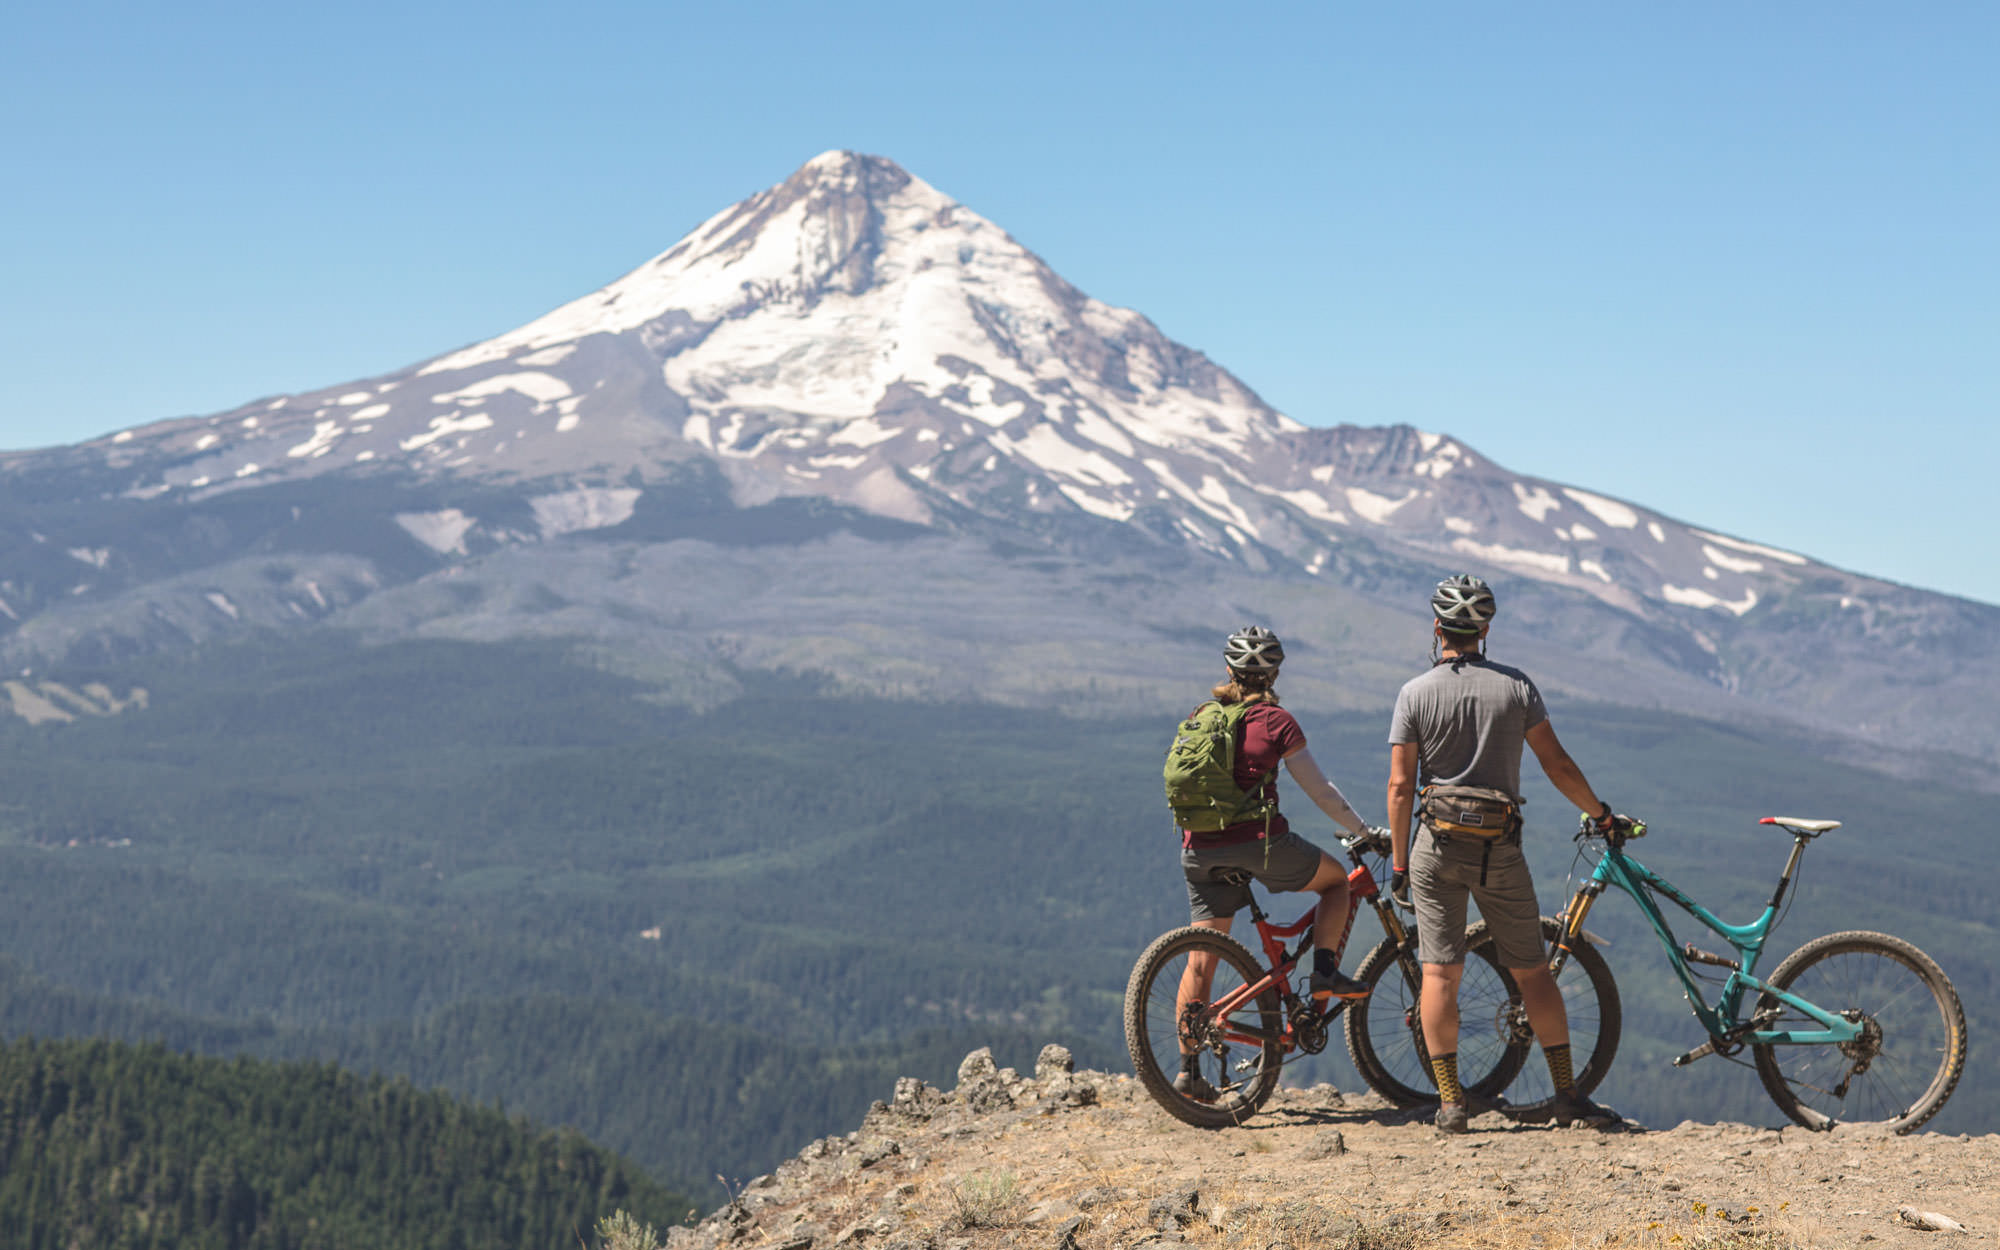 Two mountain bikers pause to look at the massive peak of Mt. Hood.